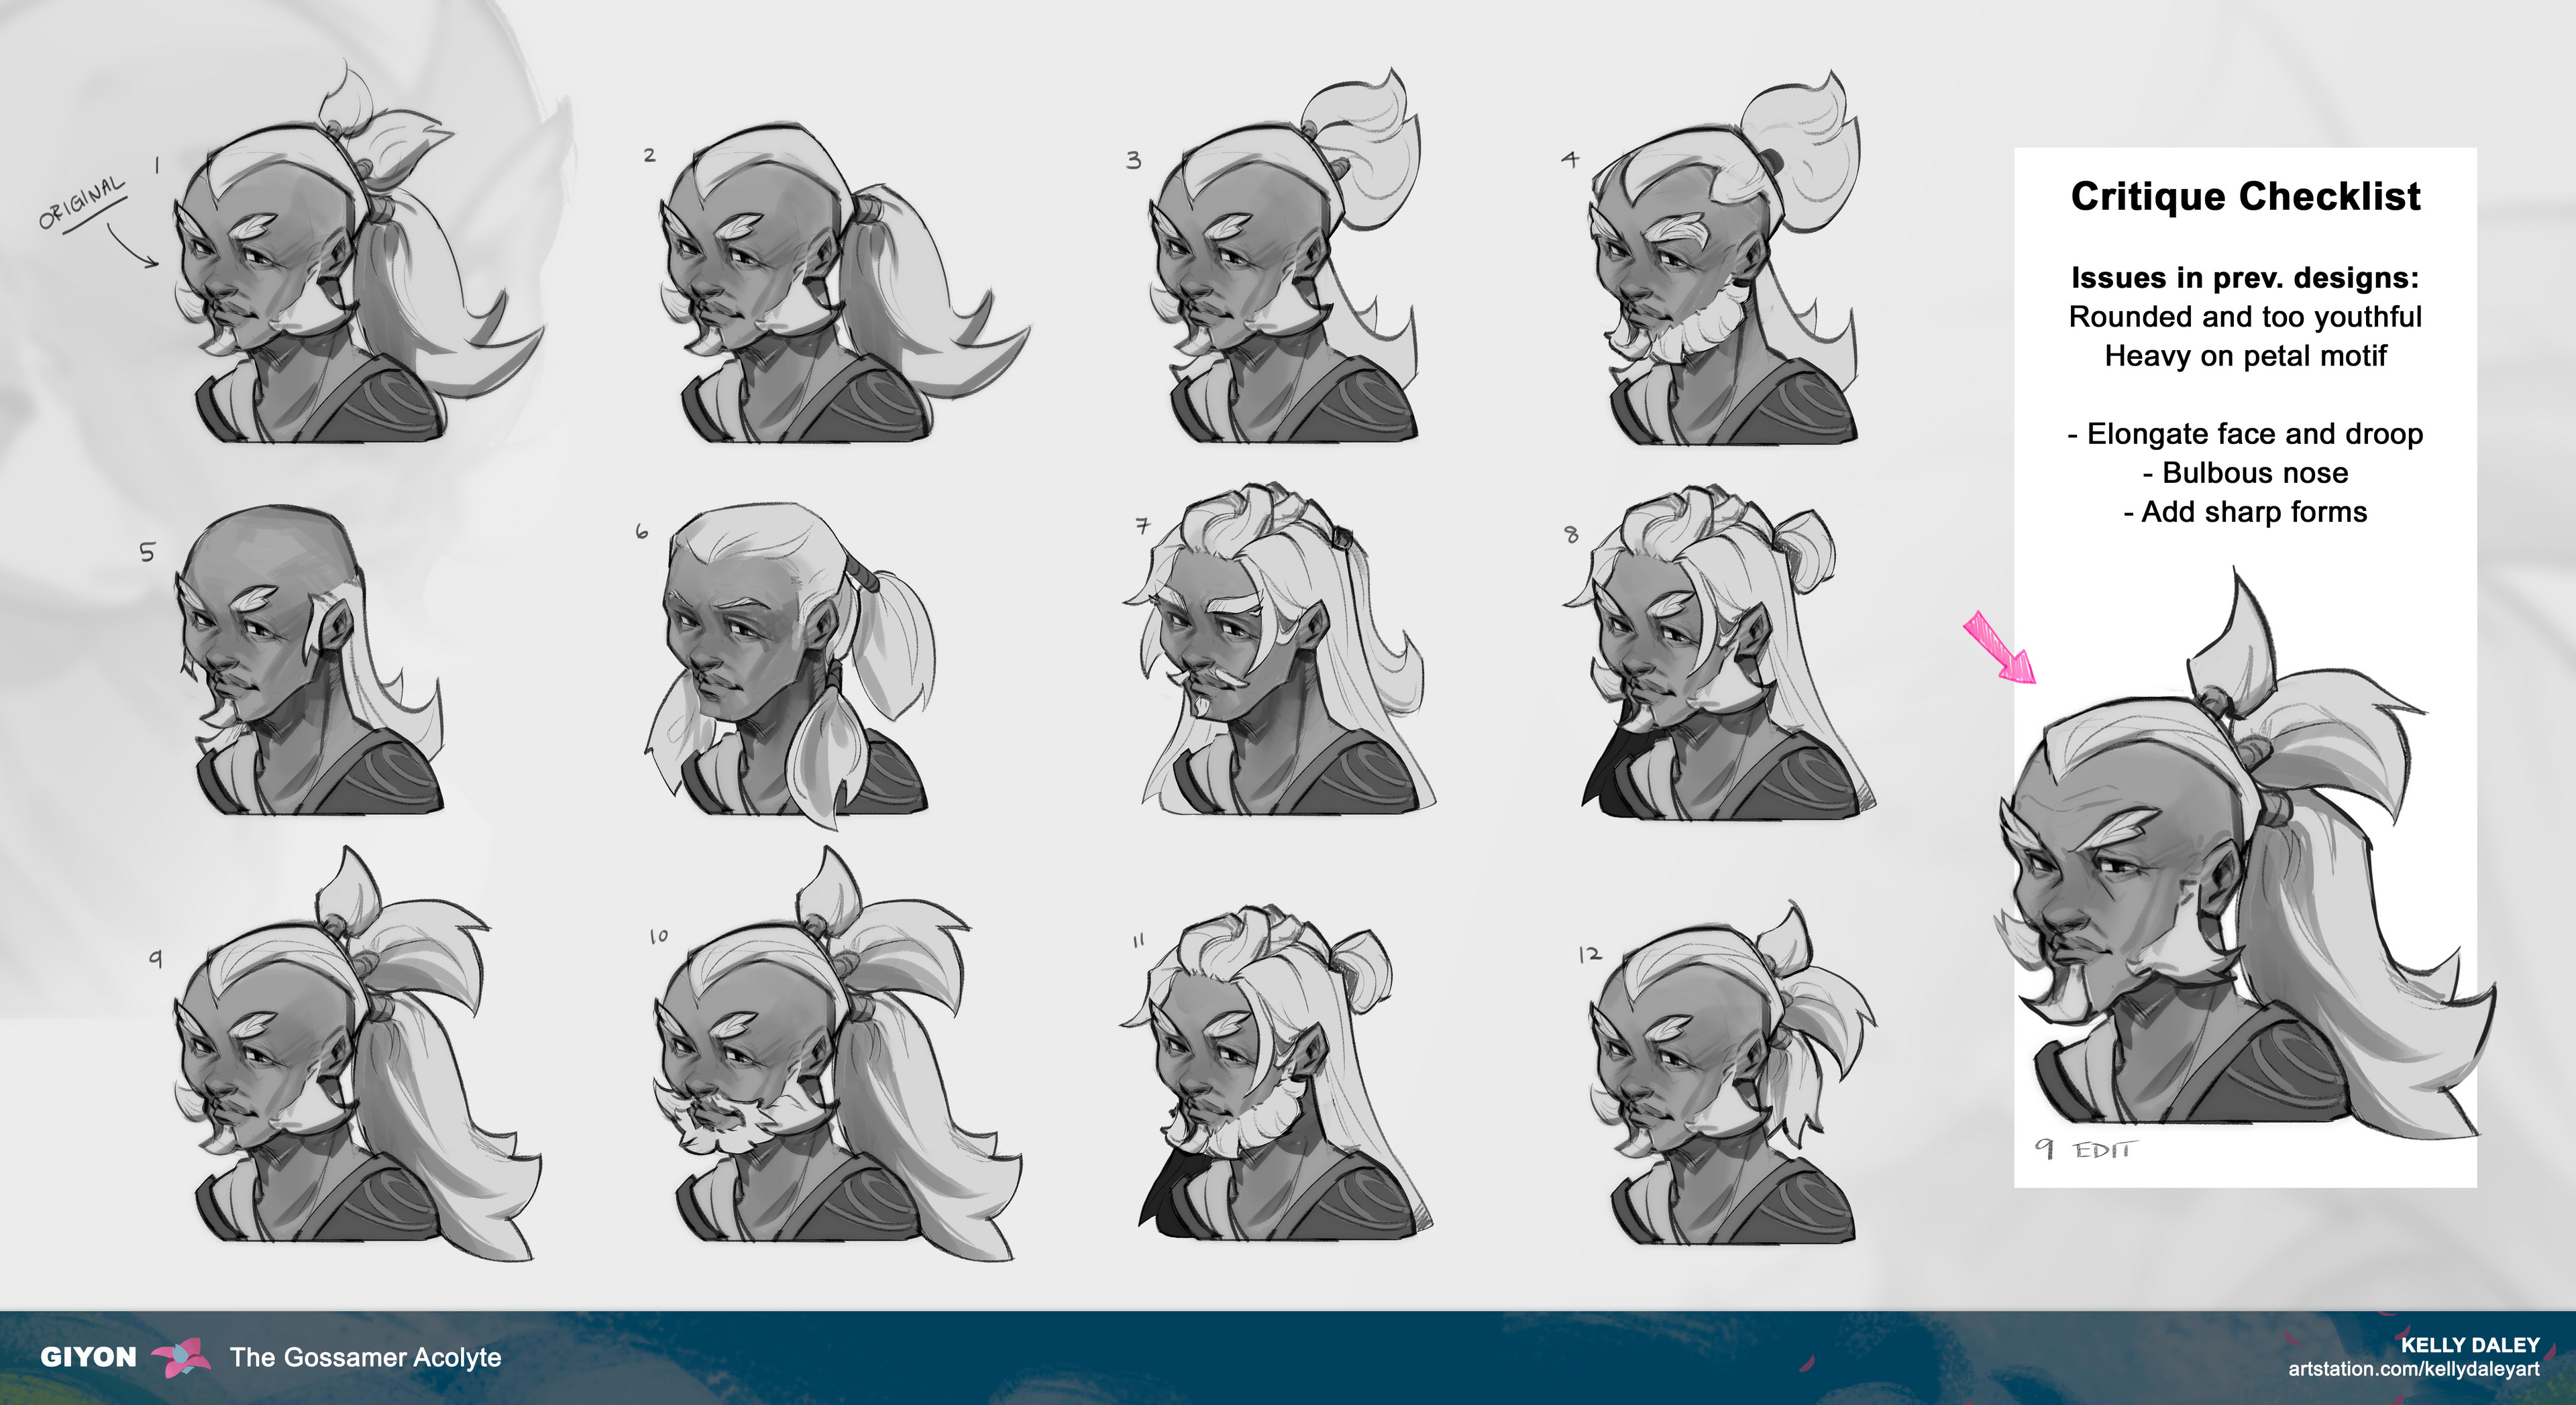 Luckily within the first iteration of heads, I felt a strong connection with one. Funny enough, I only made small changes to the original head despite all the variations. I wouldn't have known this was the best direction without all these iterations!